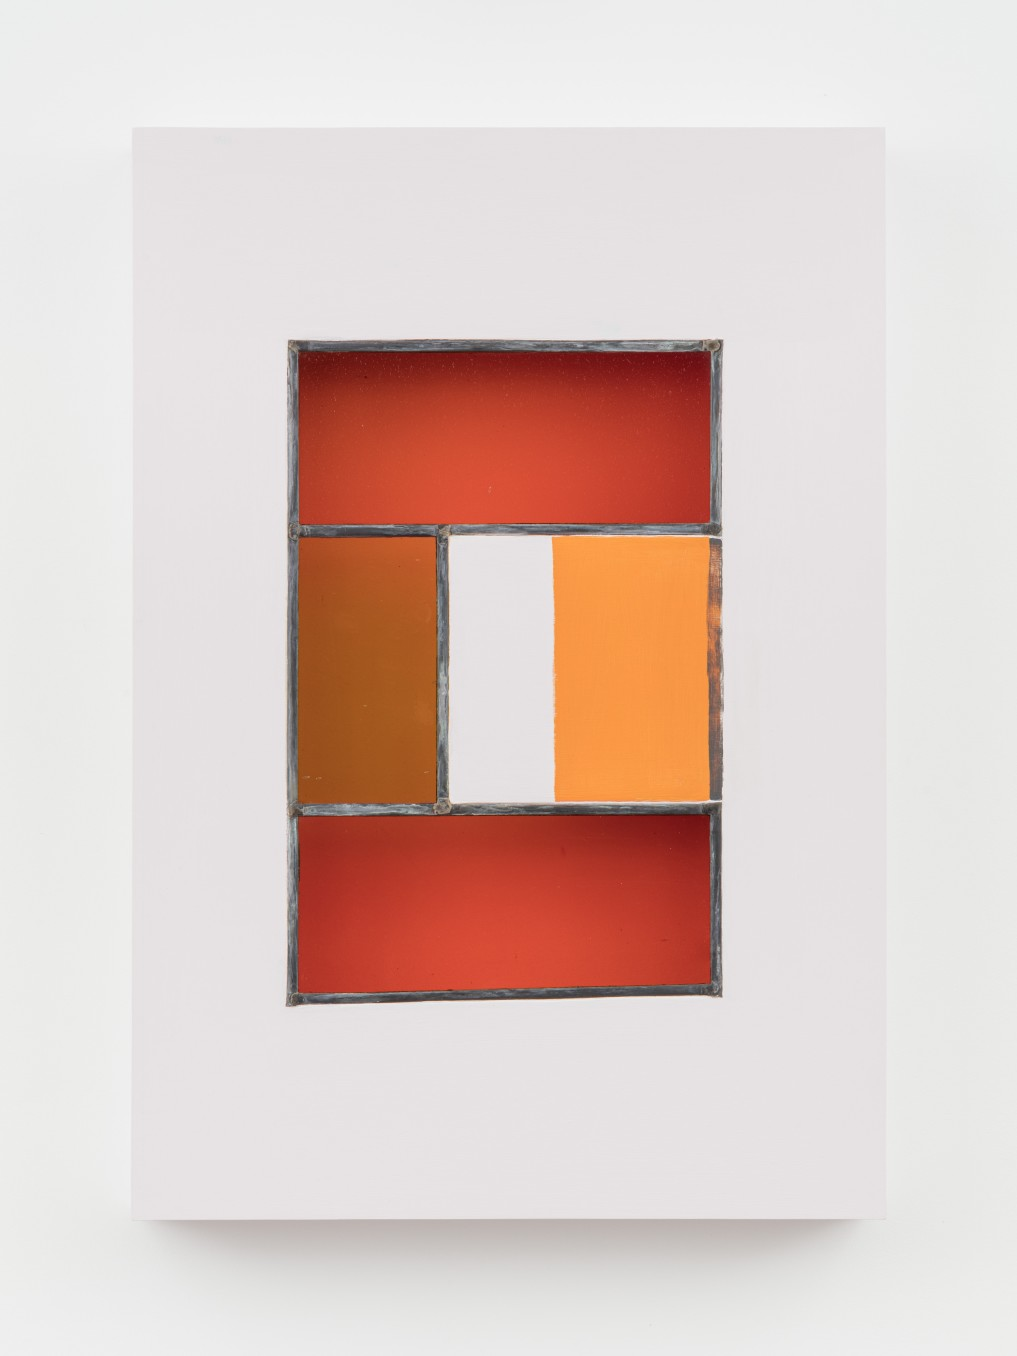 Jessica Warboys HOUR II, 2019 Acrylic, antique glass, lead came, plywood 87 x 59.7 x 8.9 cm 34 1/4 x...